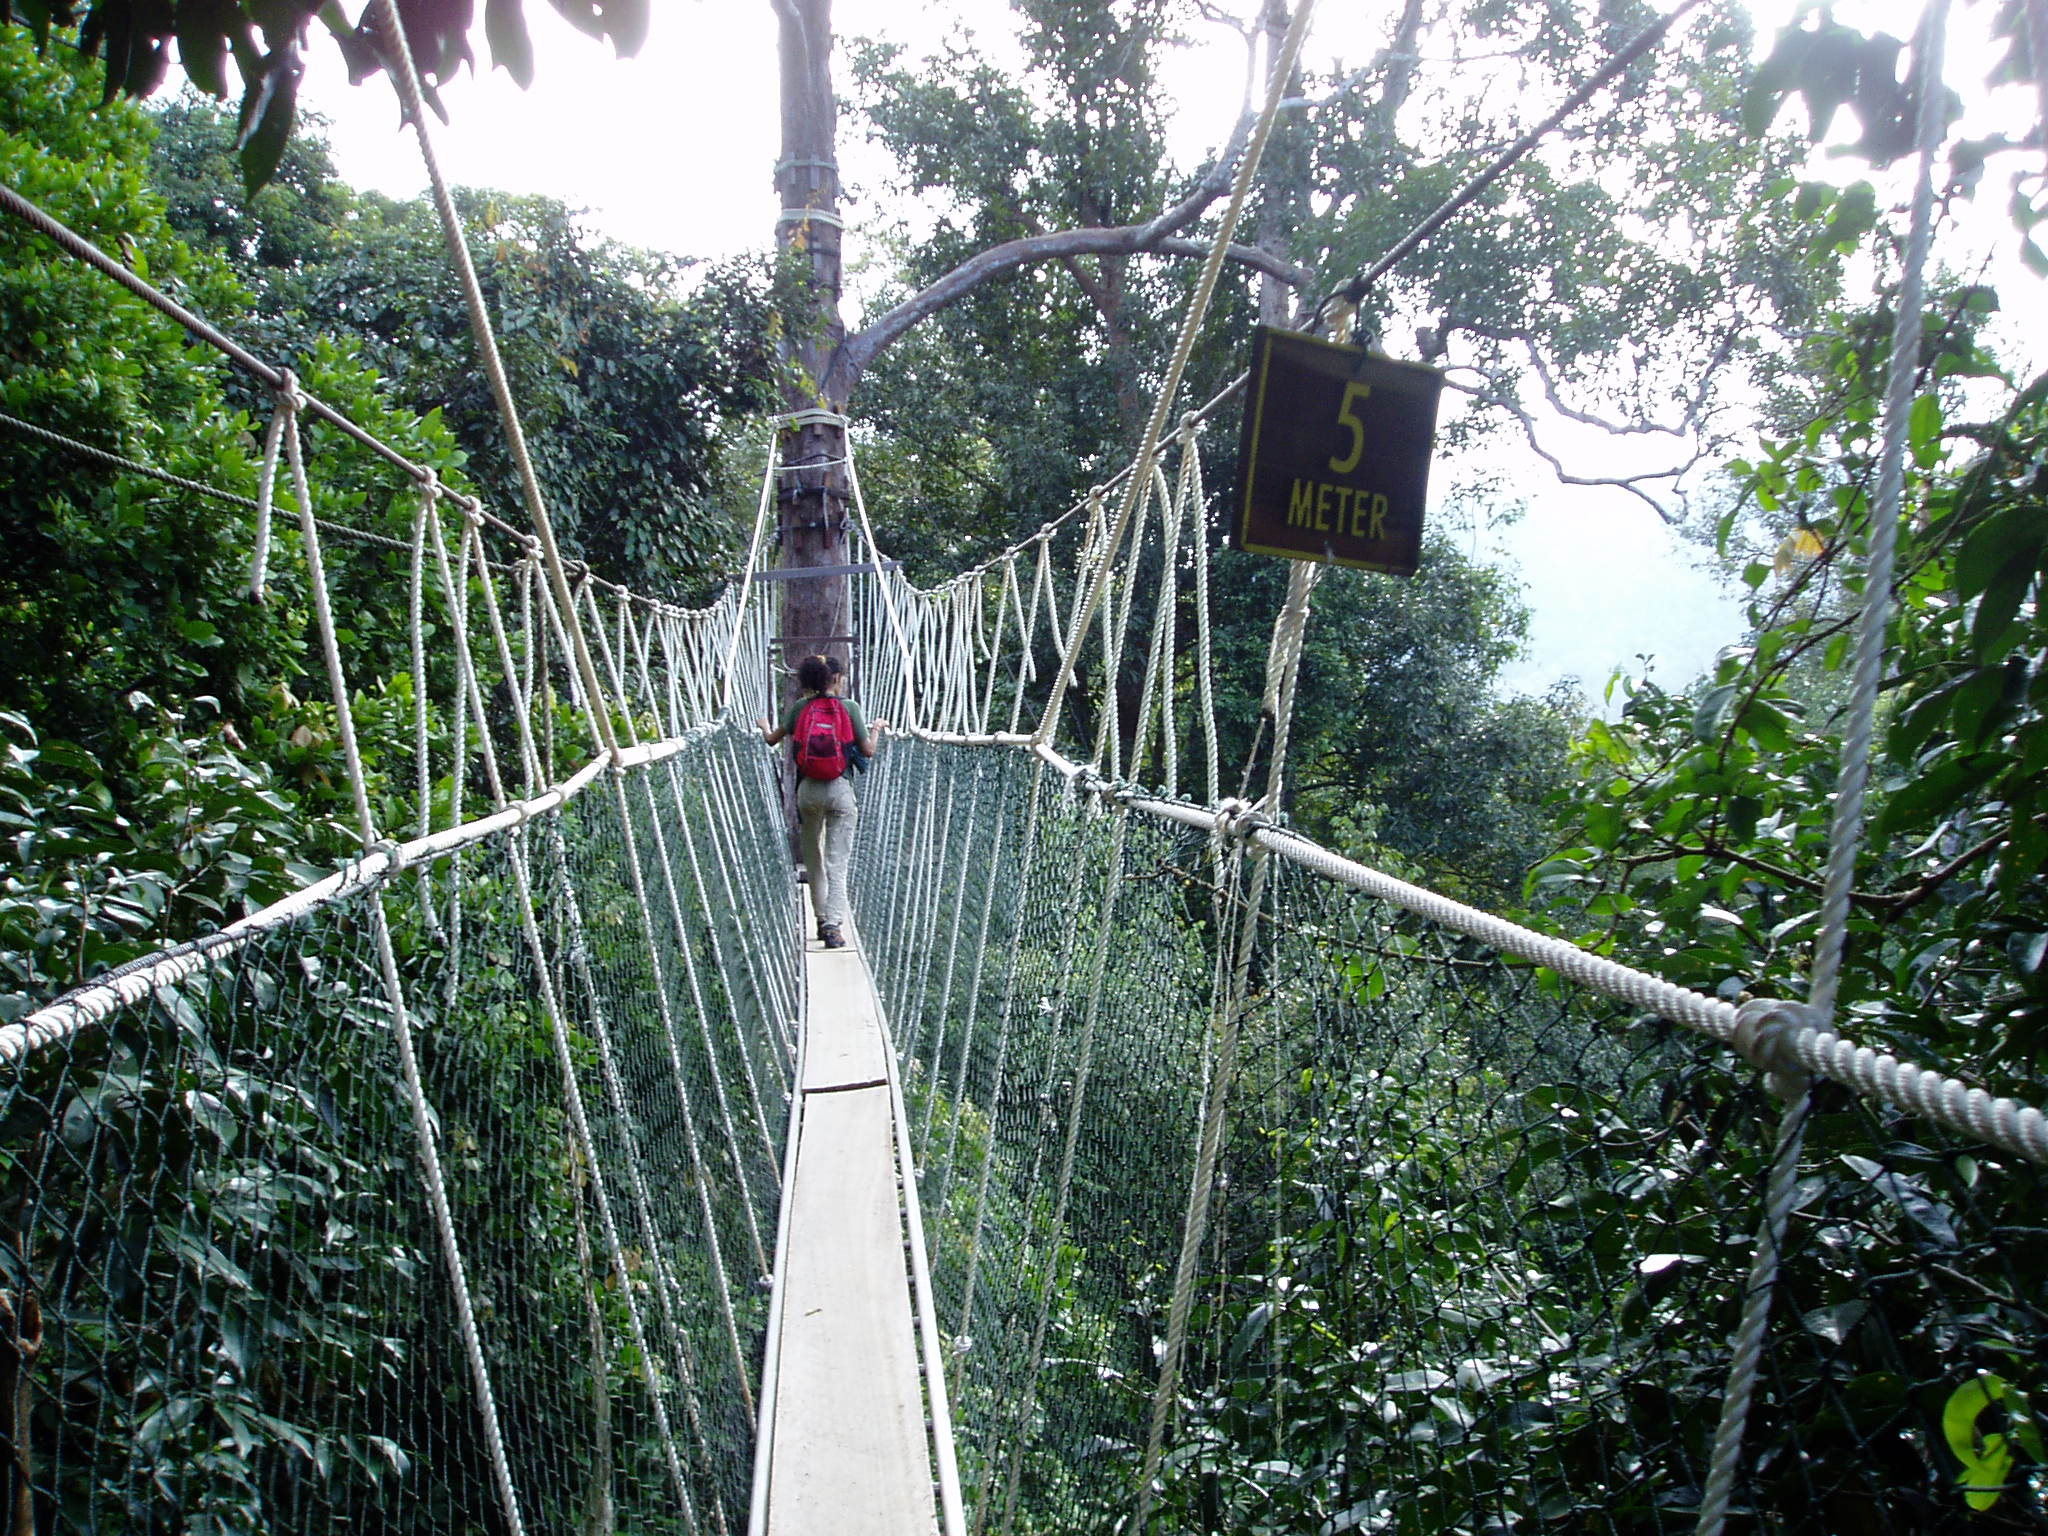 FileCanopy Walk.jpg & File:Canopy Walk.jpg - Wikimedia Commons